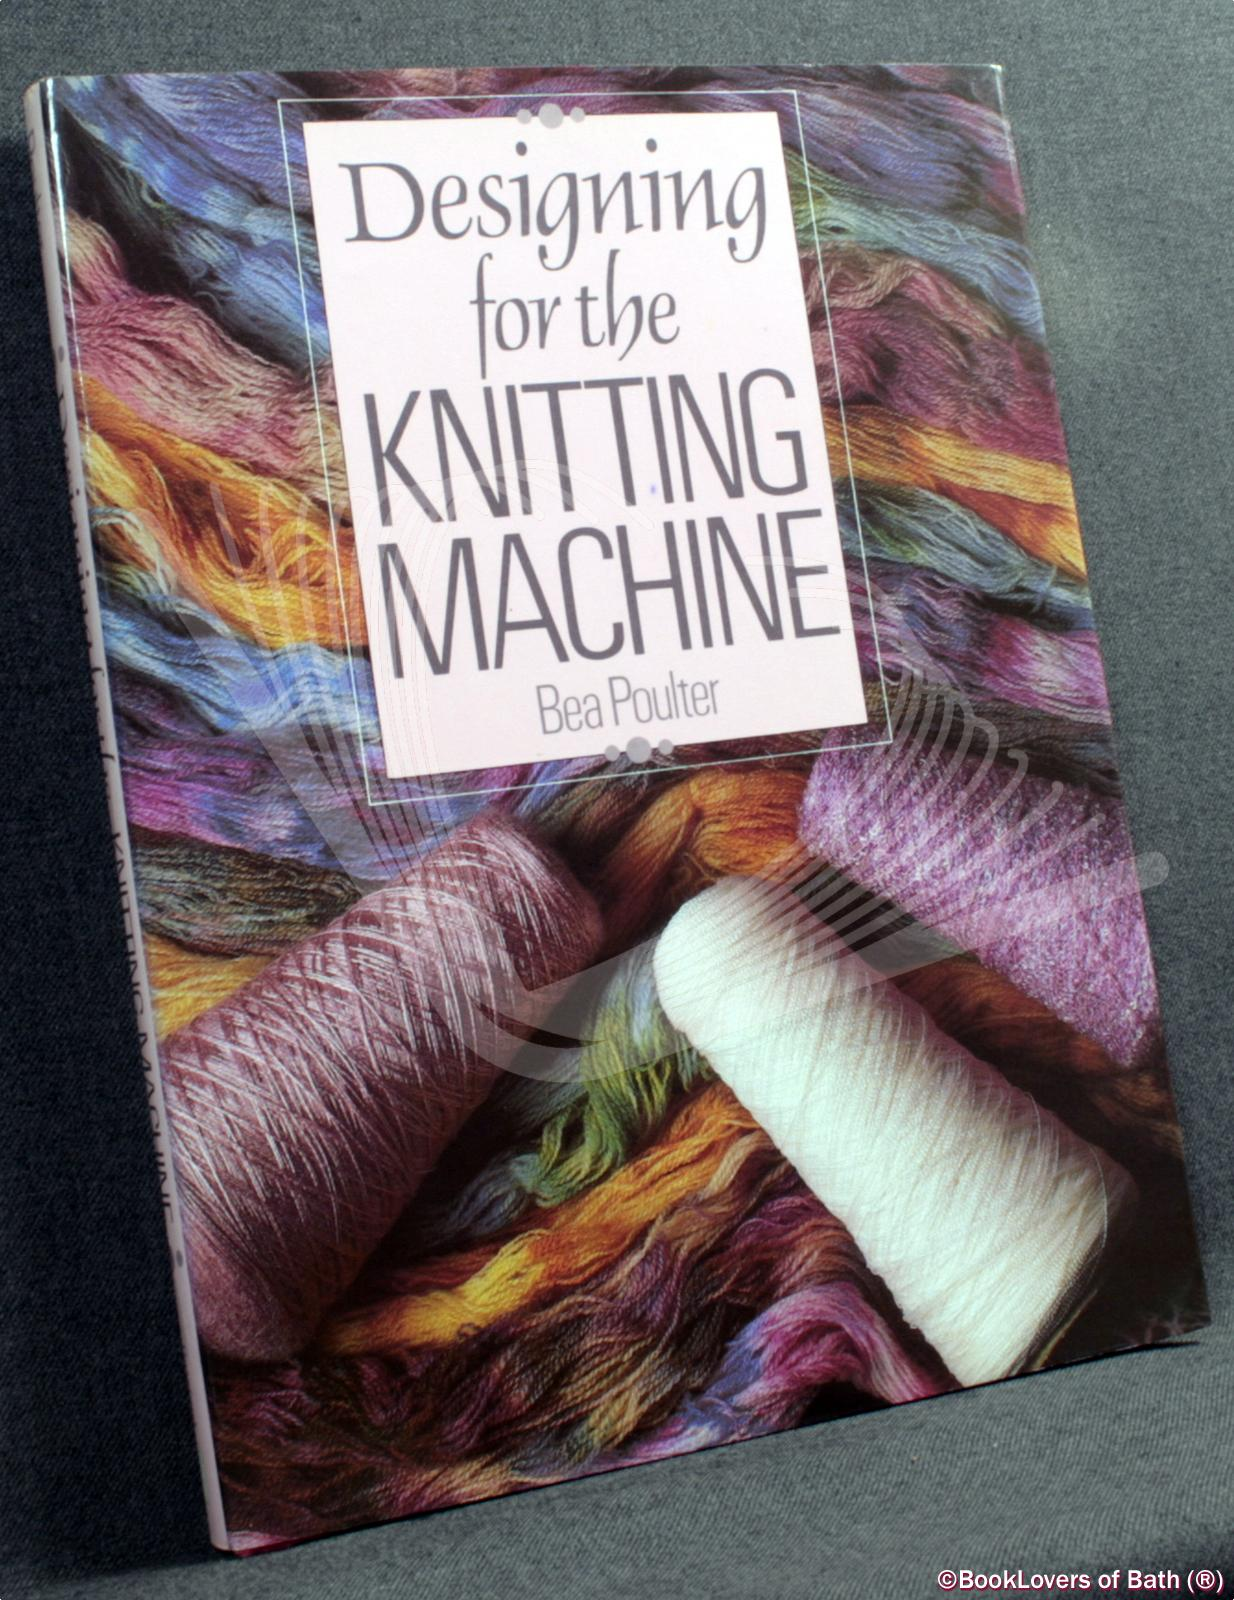 Designing for the Knitting Machine - Bea Poulter